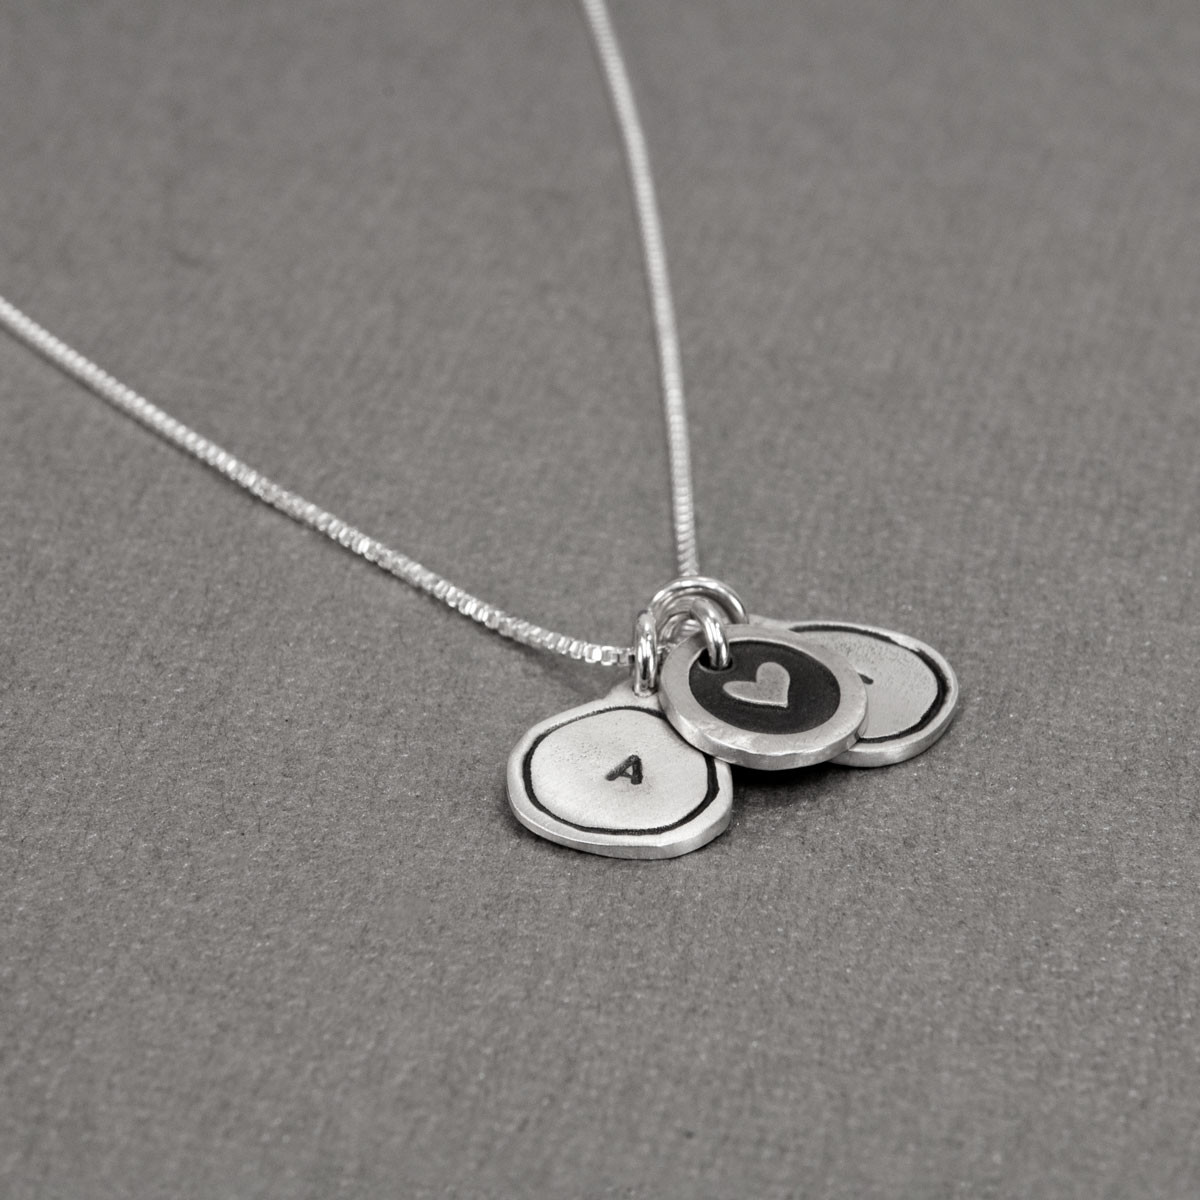 Tiny Framed Initial Charm Necklace made of fine silver, shown from the side